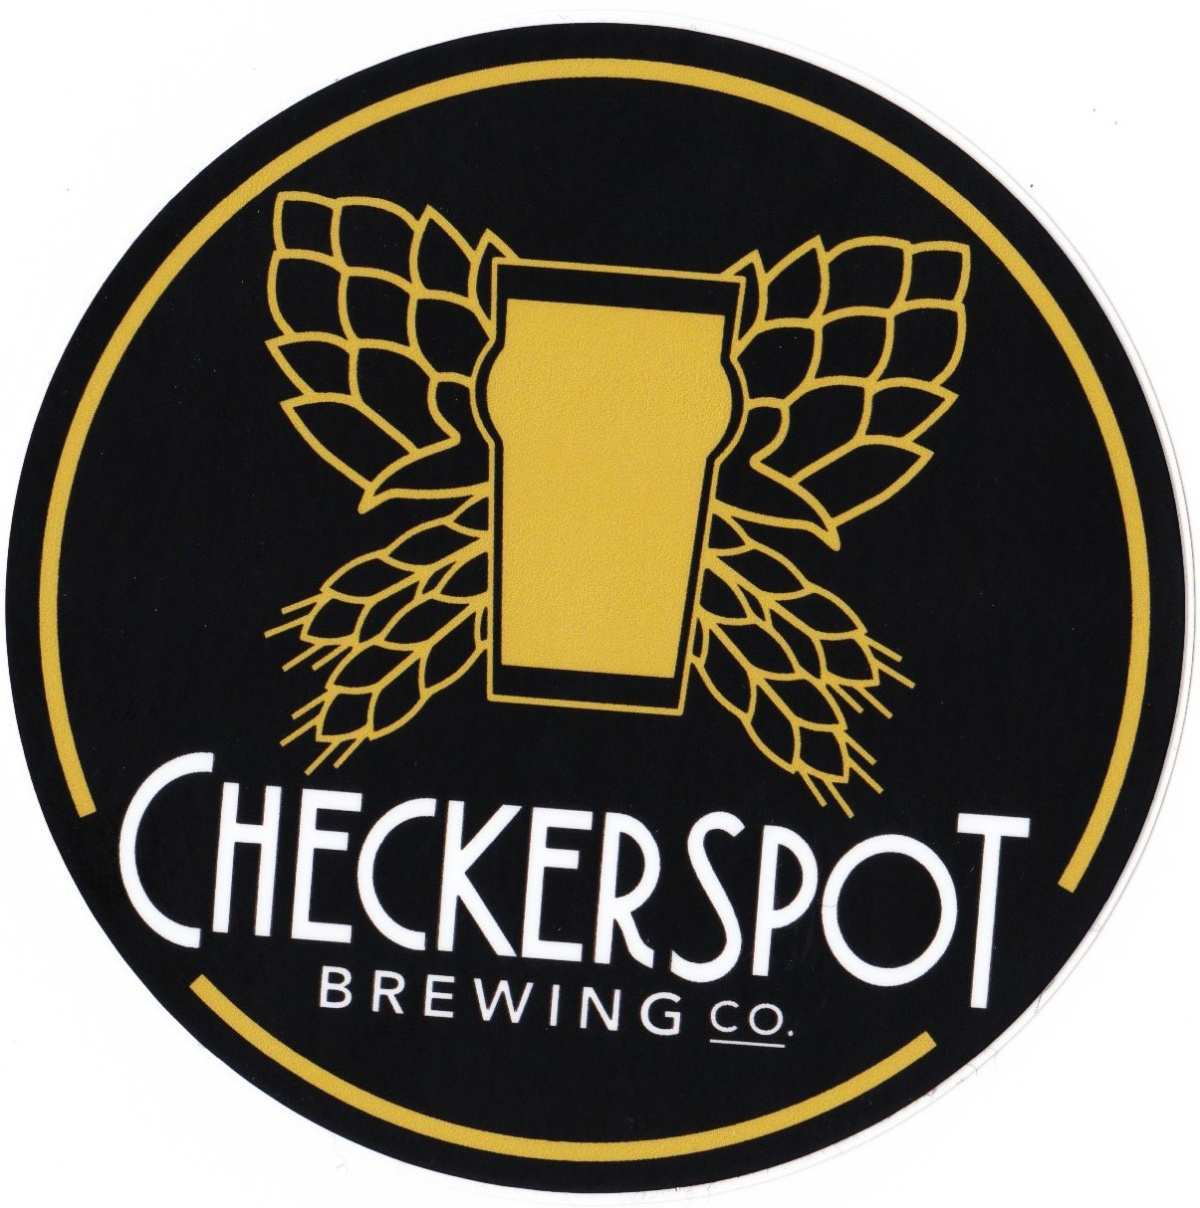 Checkerspot Brewing Co